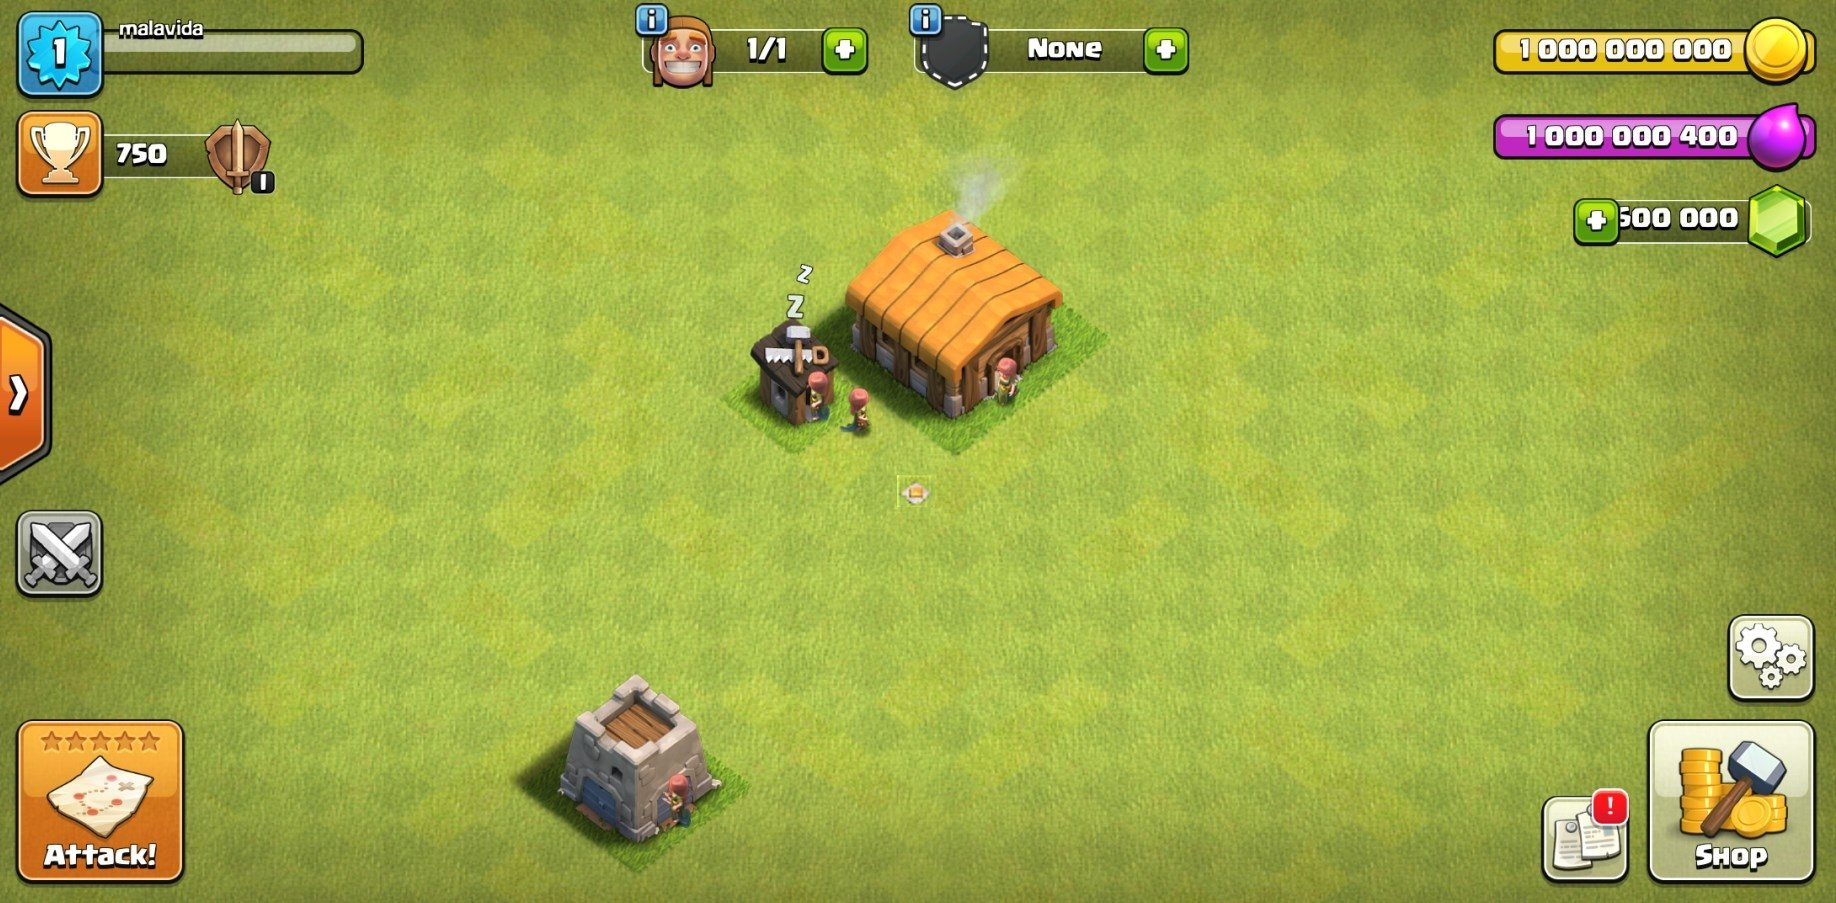 coc apk download android 1